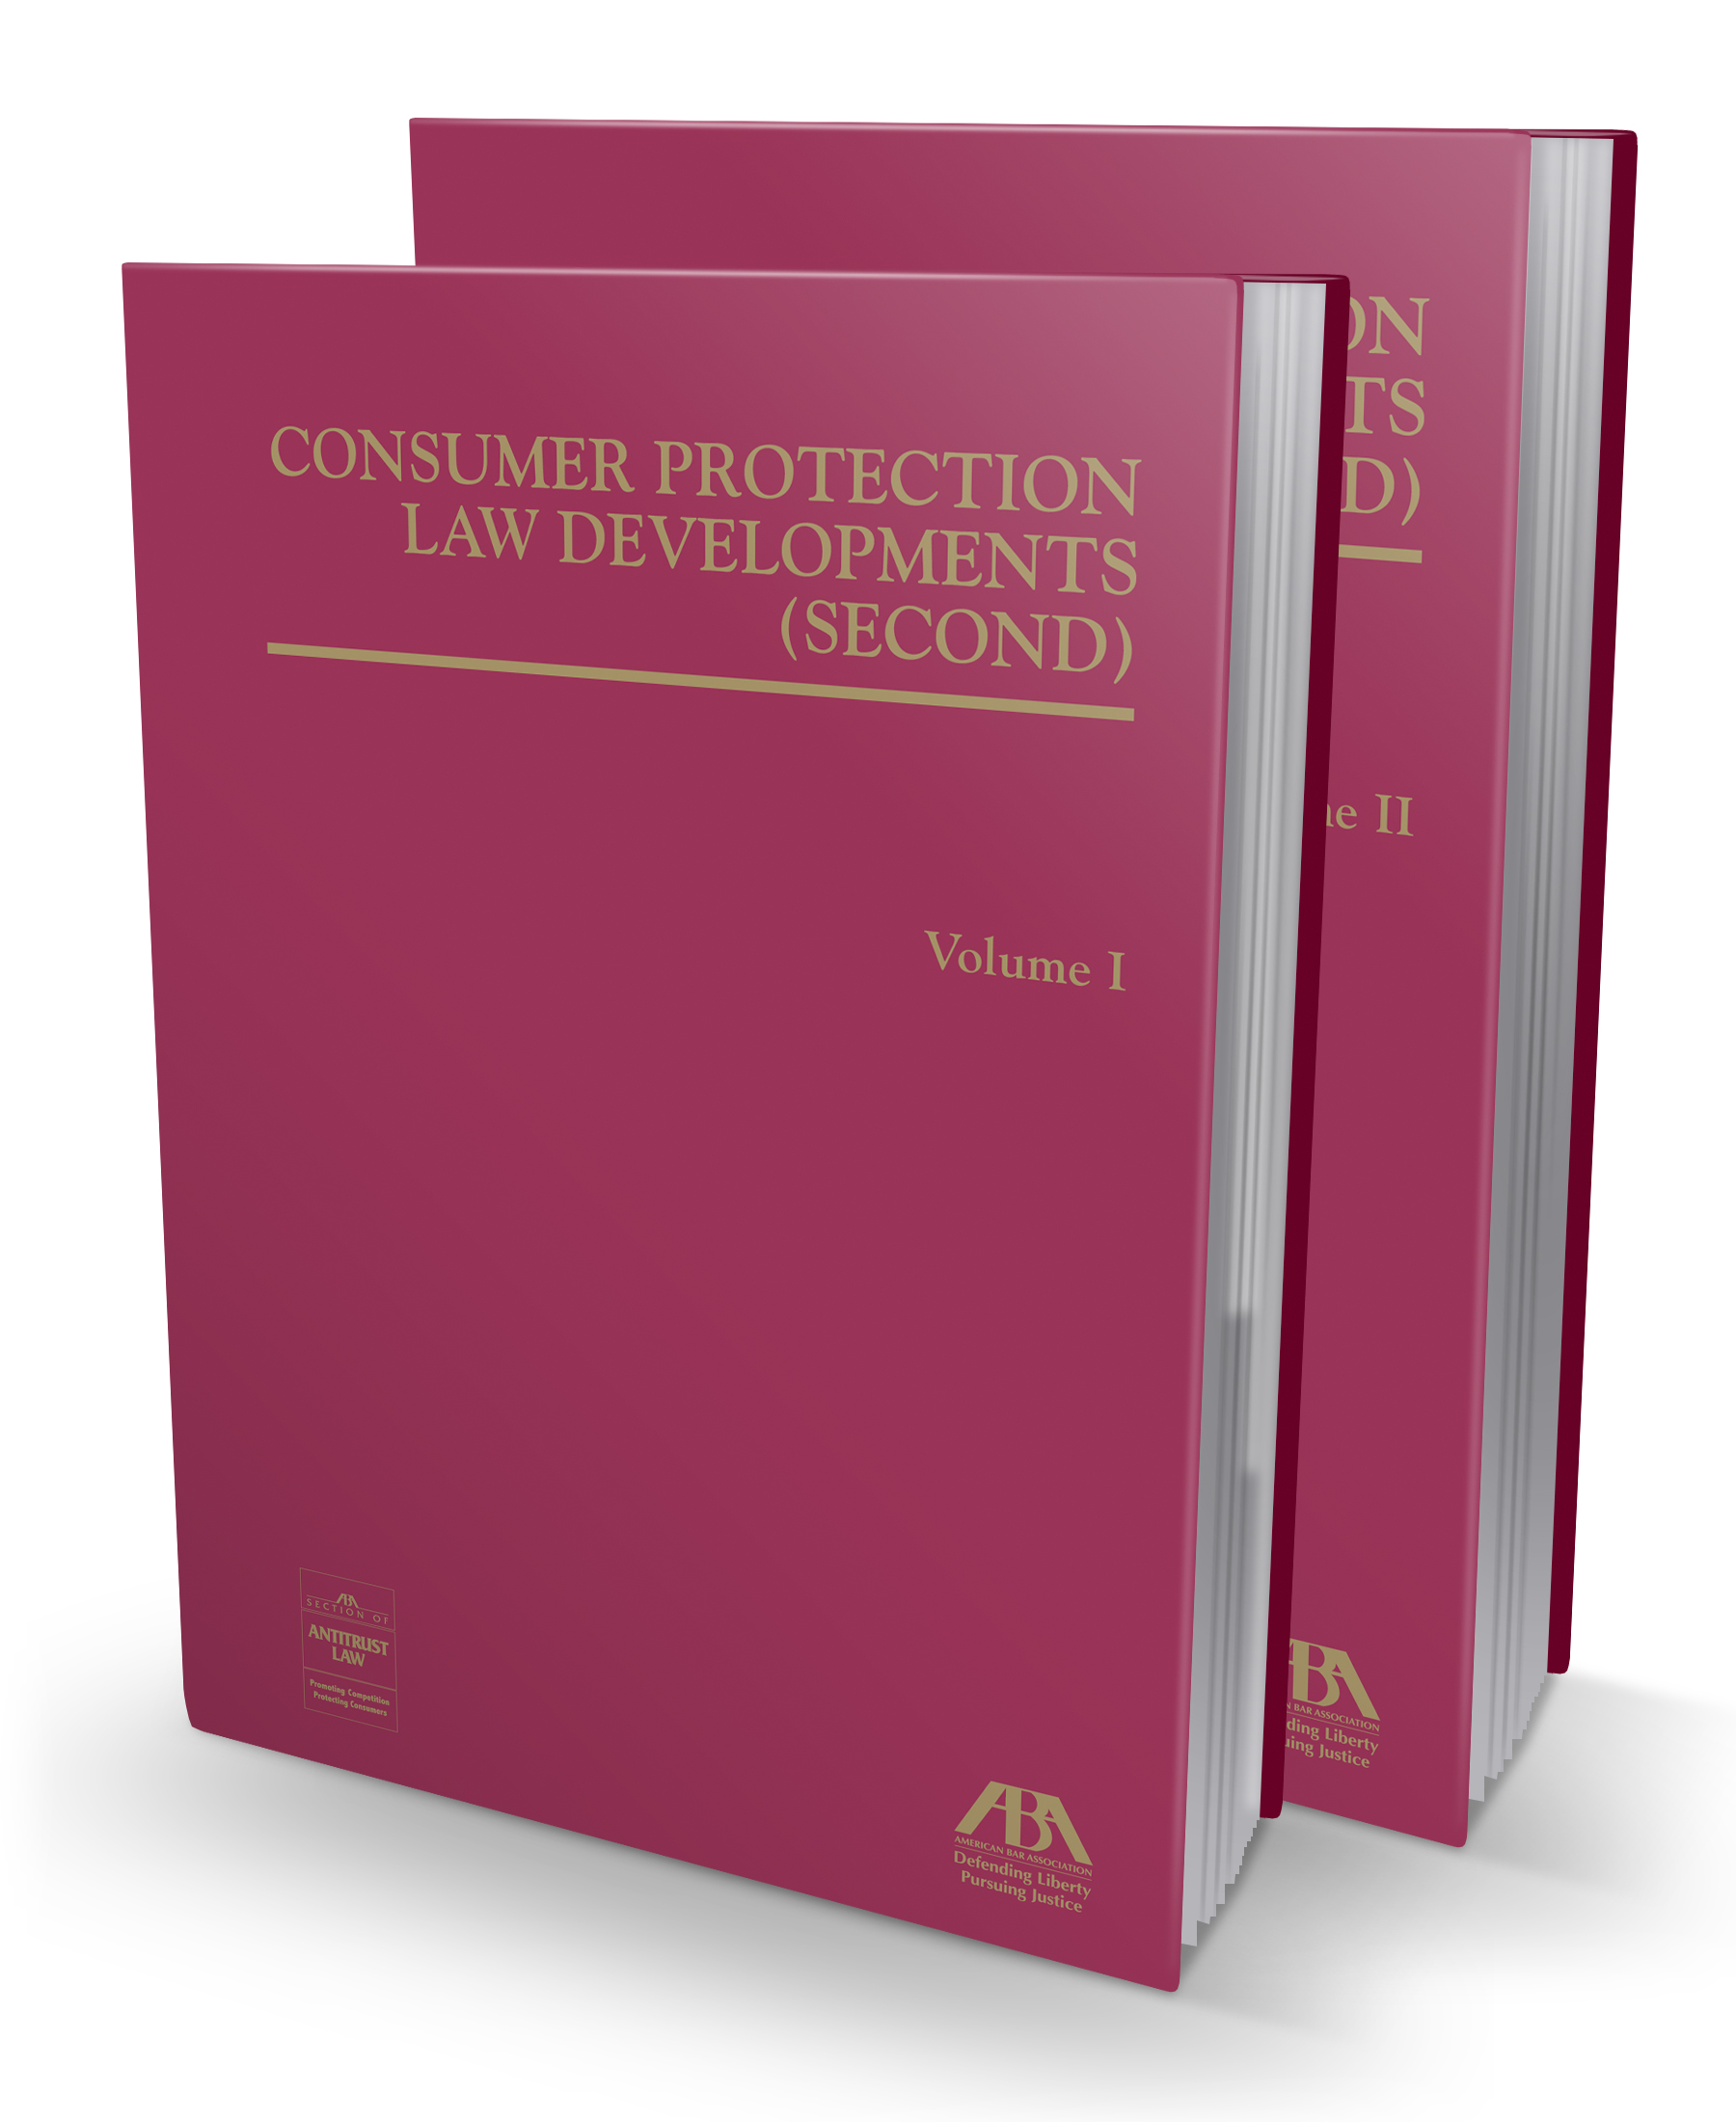 Consumer Protection Law Developments Second Edition